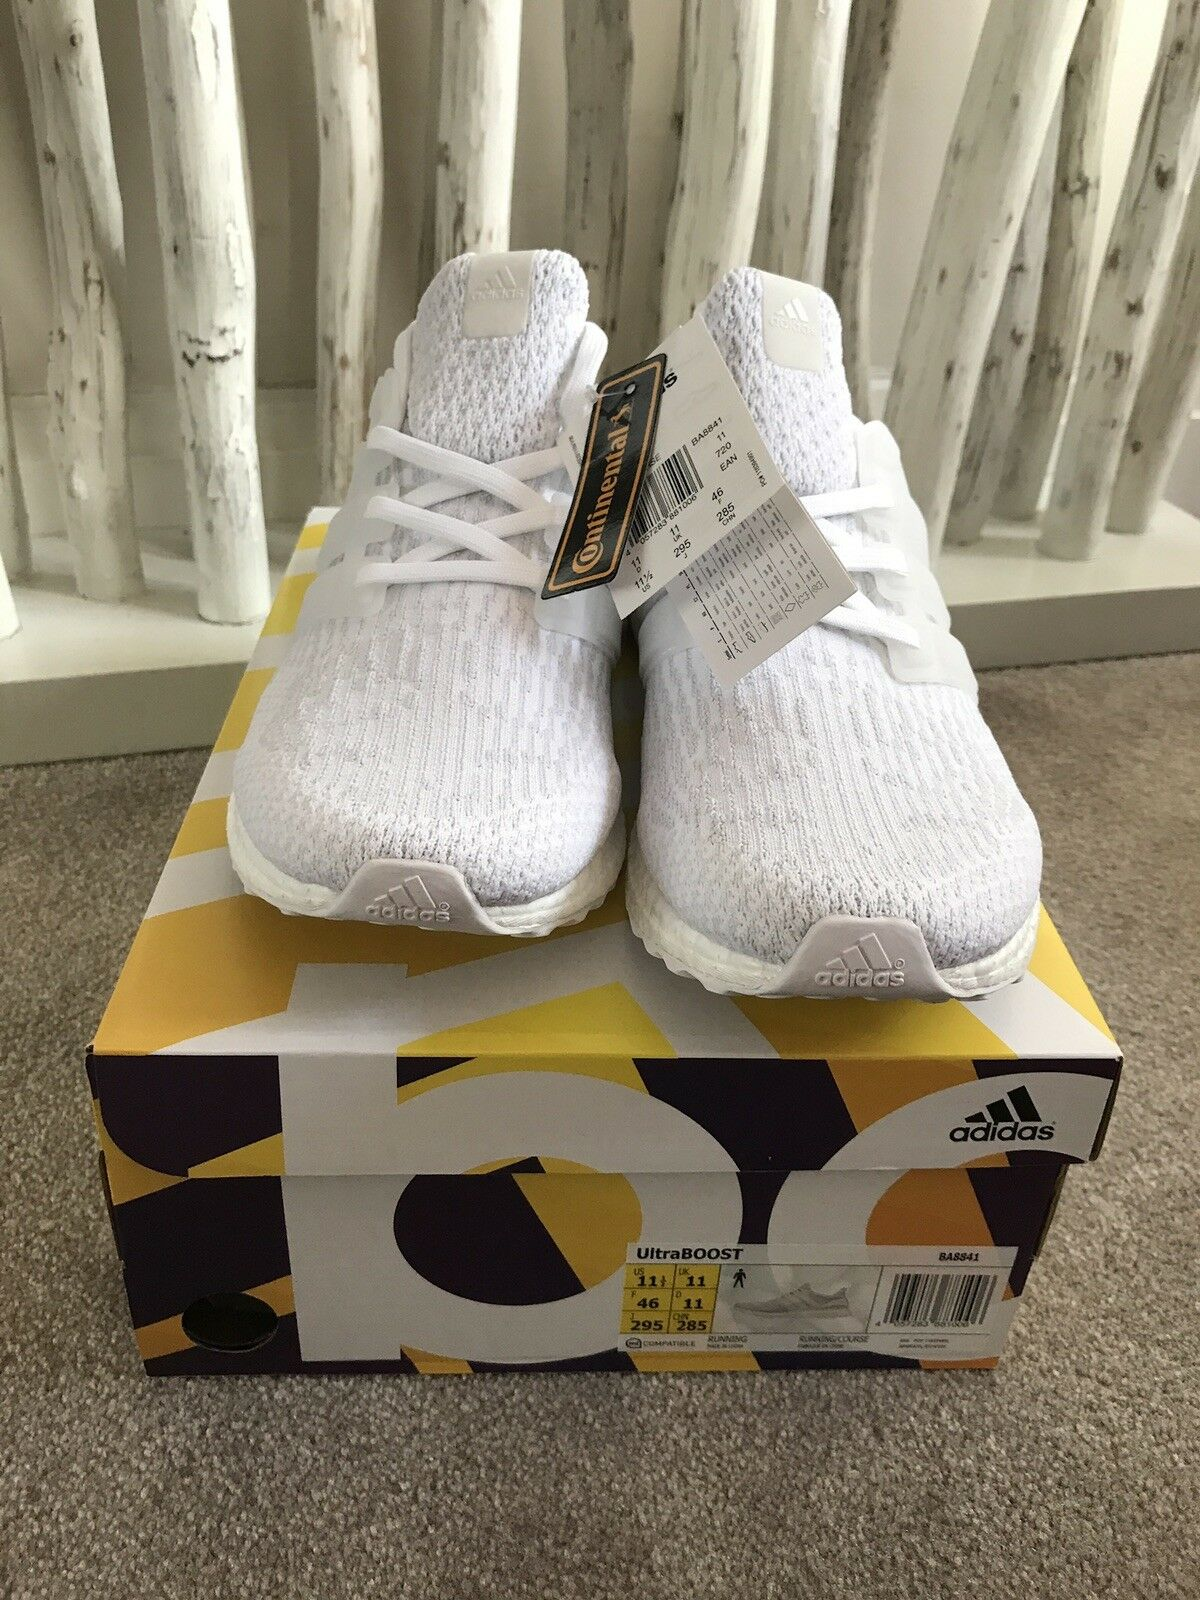 Adidas ultra boost uk 10 Weiß Deadstock